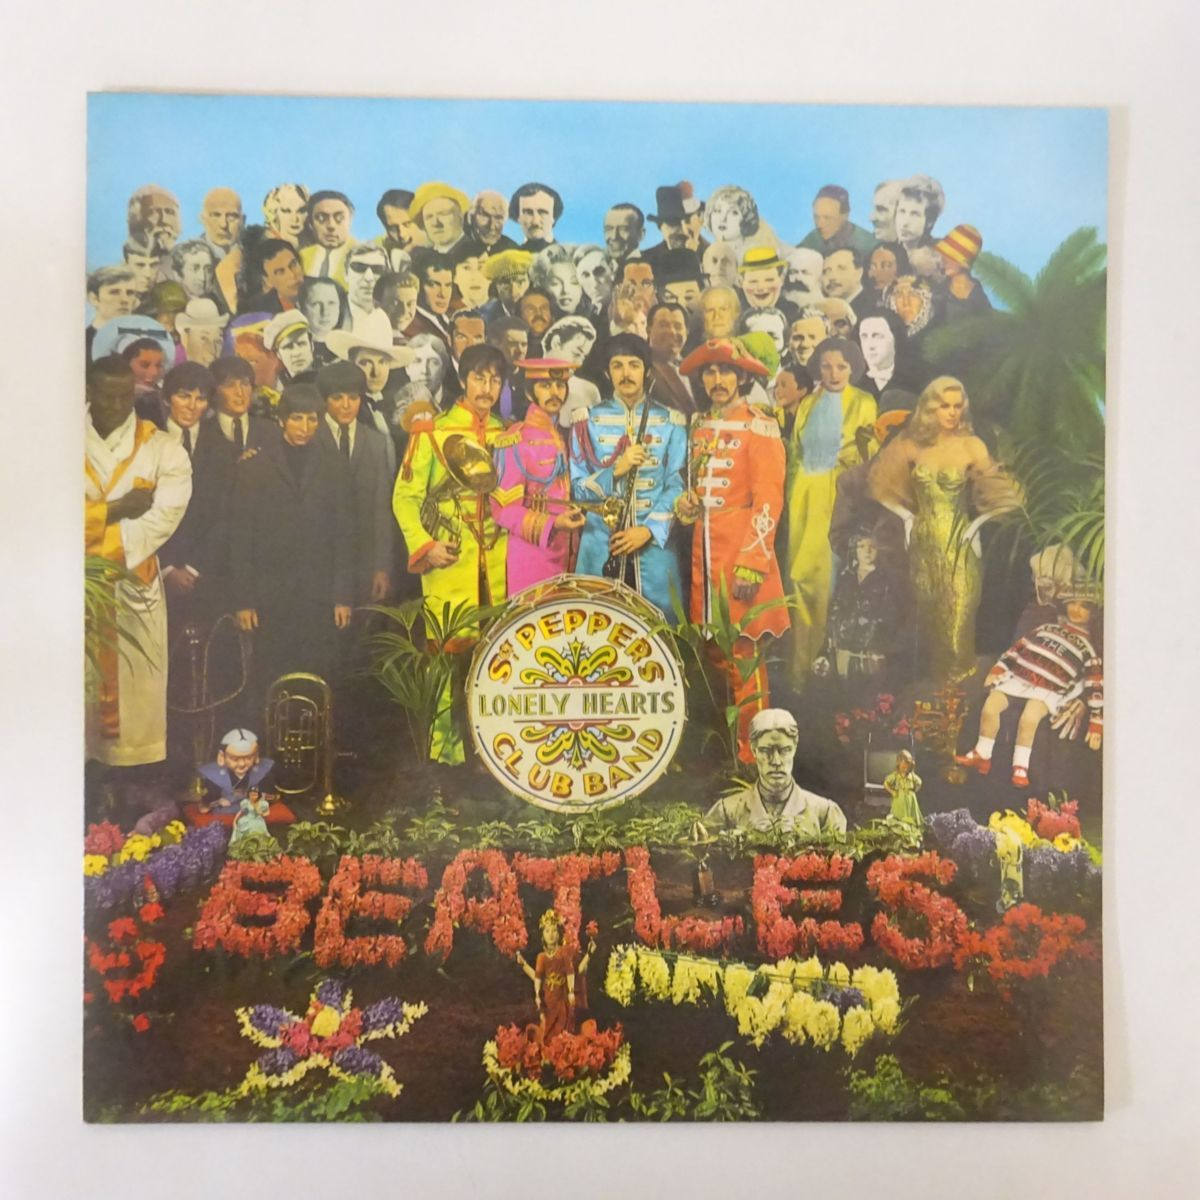 13036225;【UK盤/MONO/美盤】The Beatles / Sgt. Pepper's Lonely Hearts Club Band_画像1